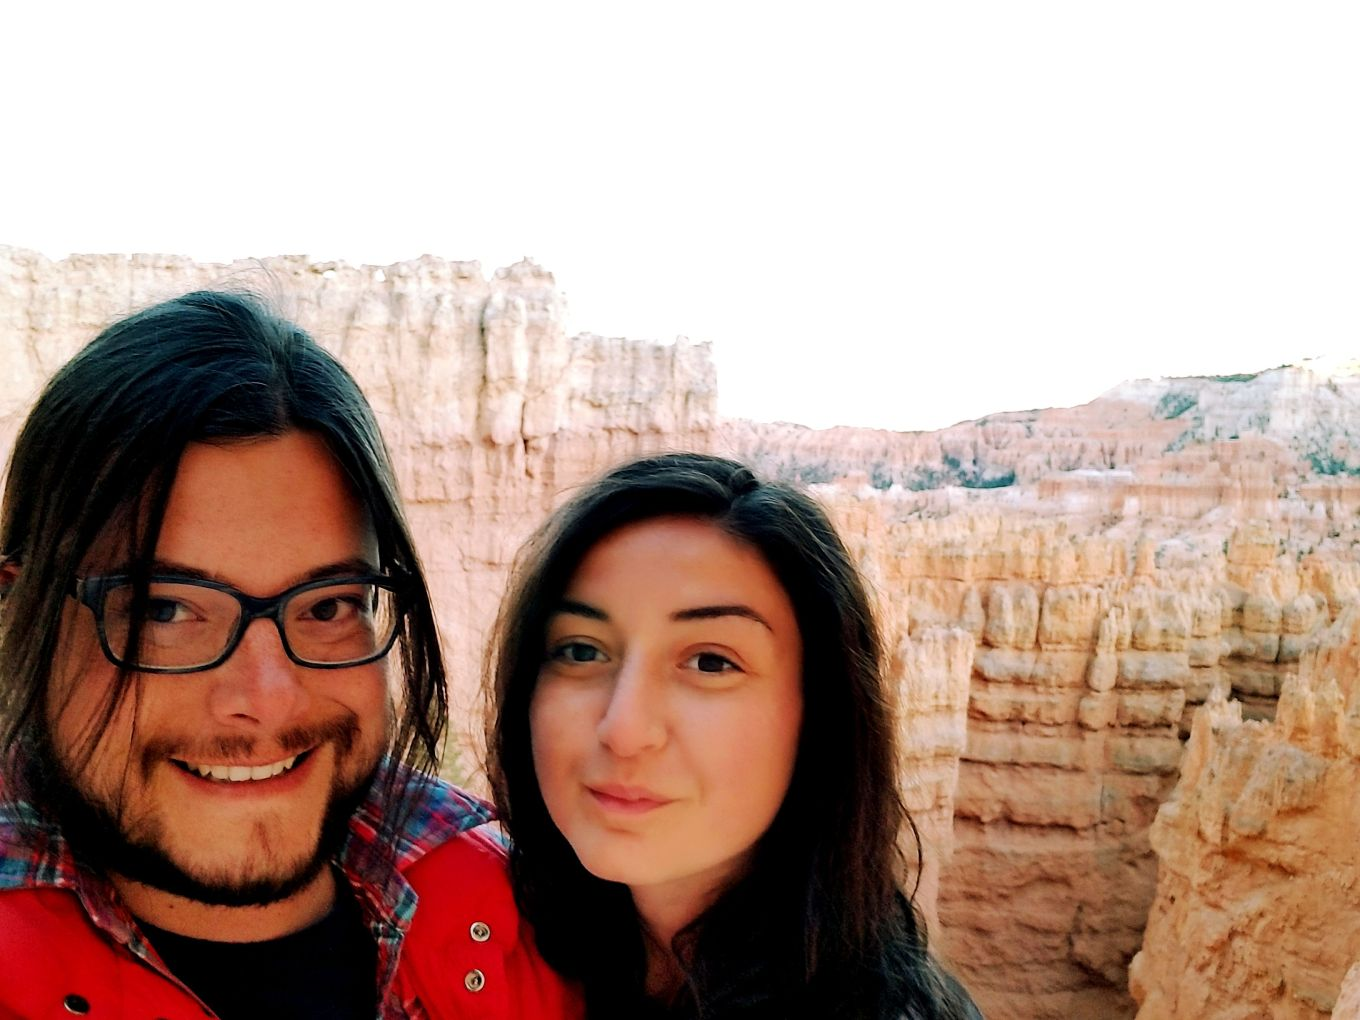 J and Y at Bryce Canyon National Park, UT